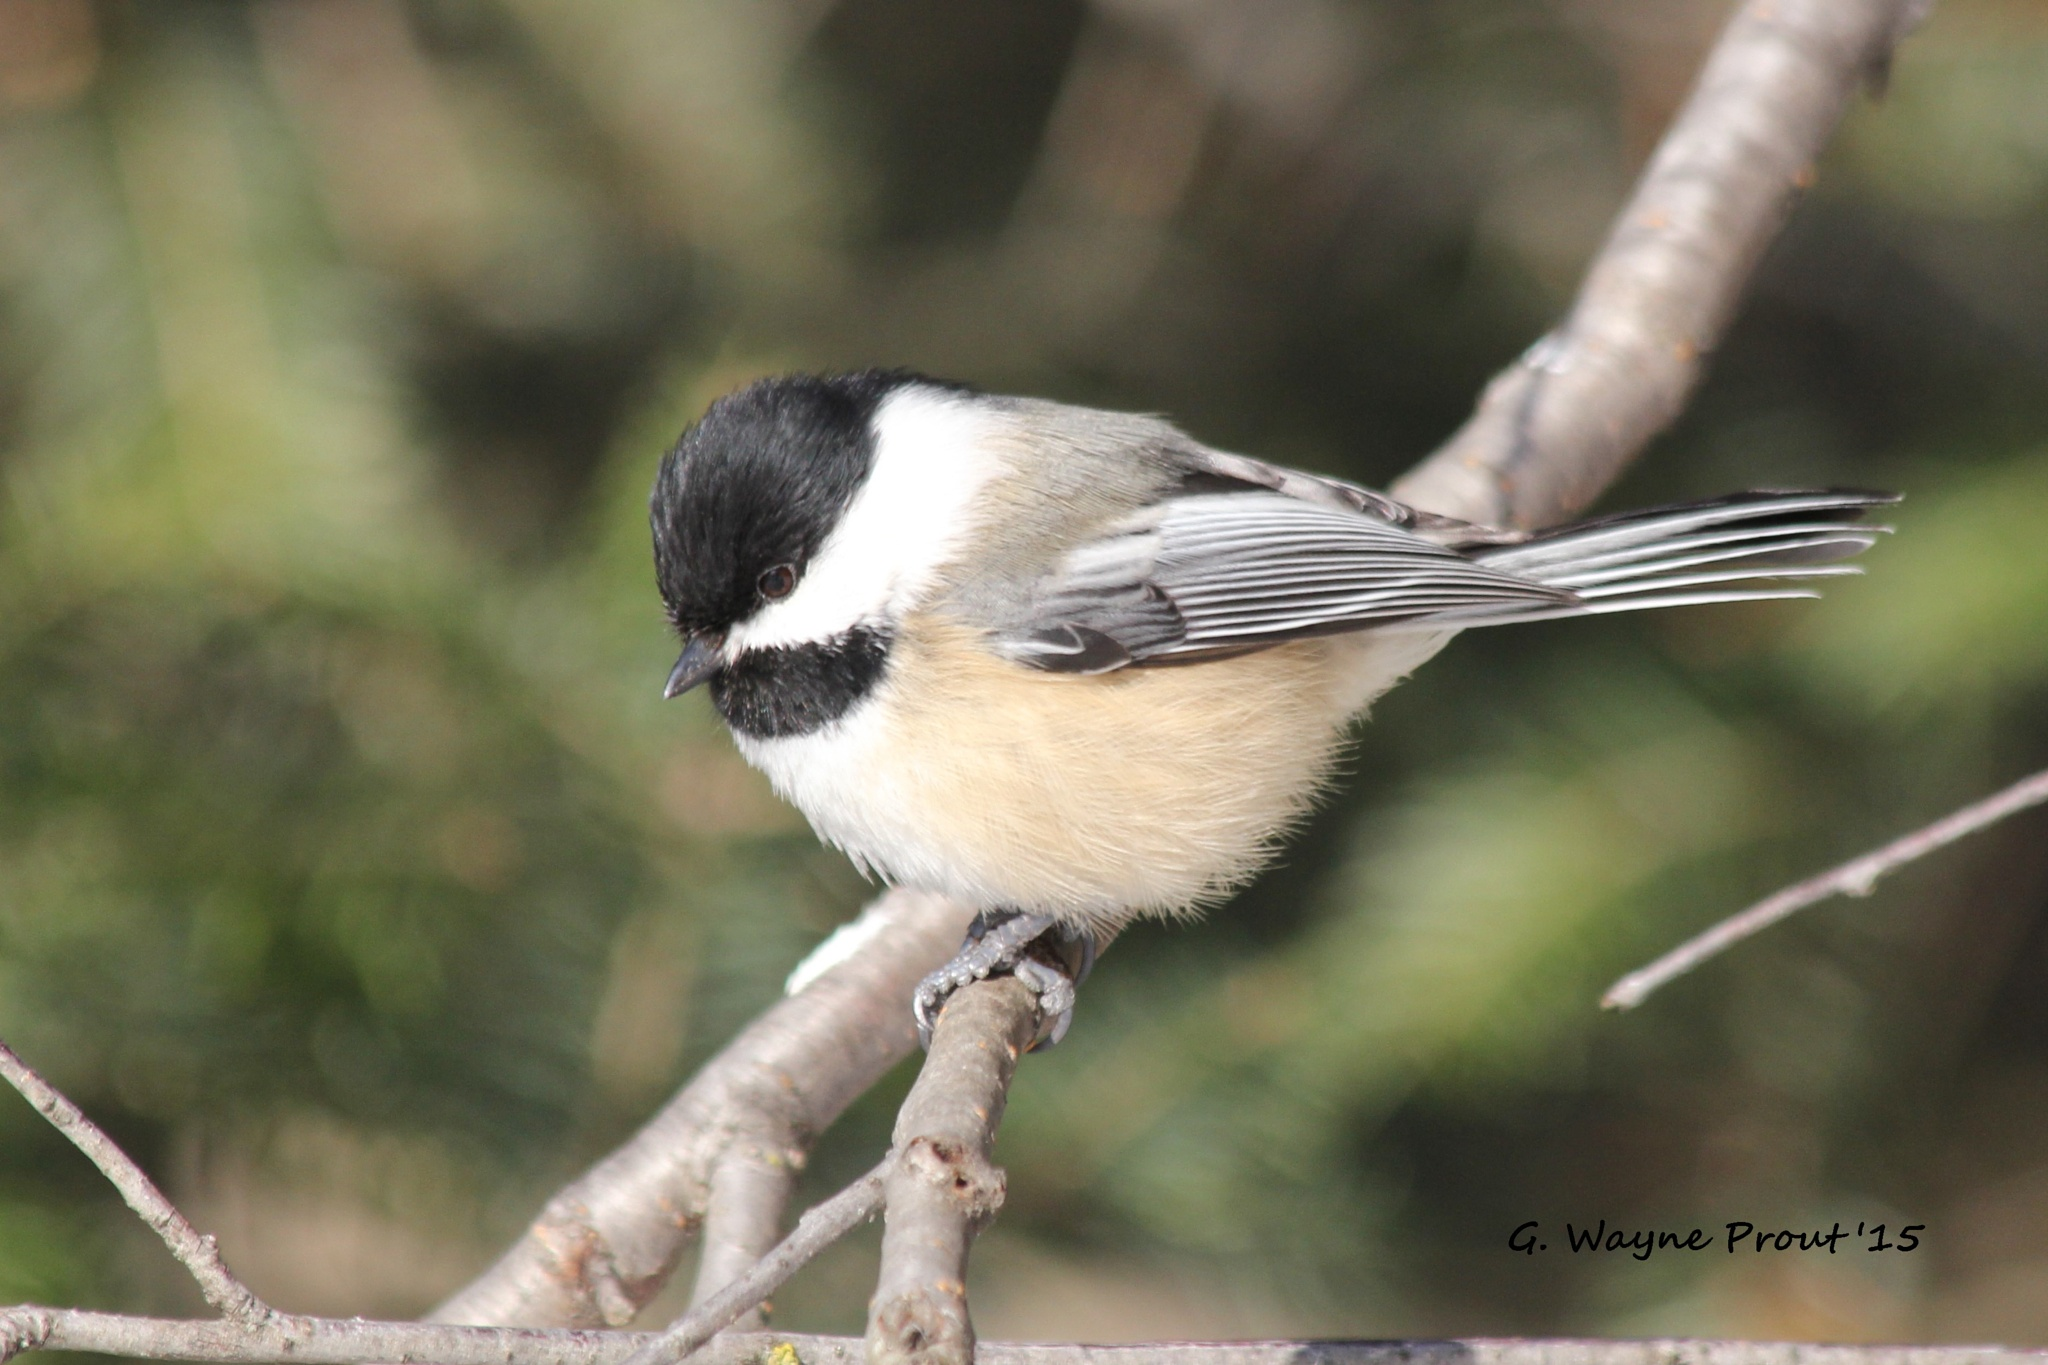 Black-capped Chickadee (Poecile atricapillu) by gwprout